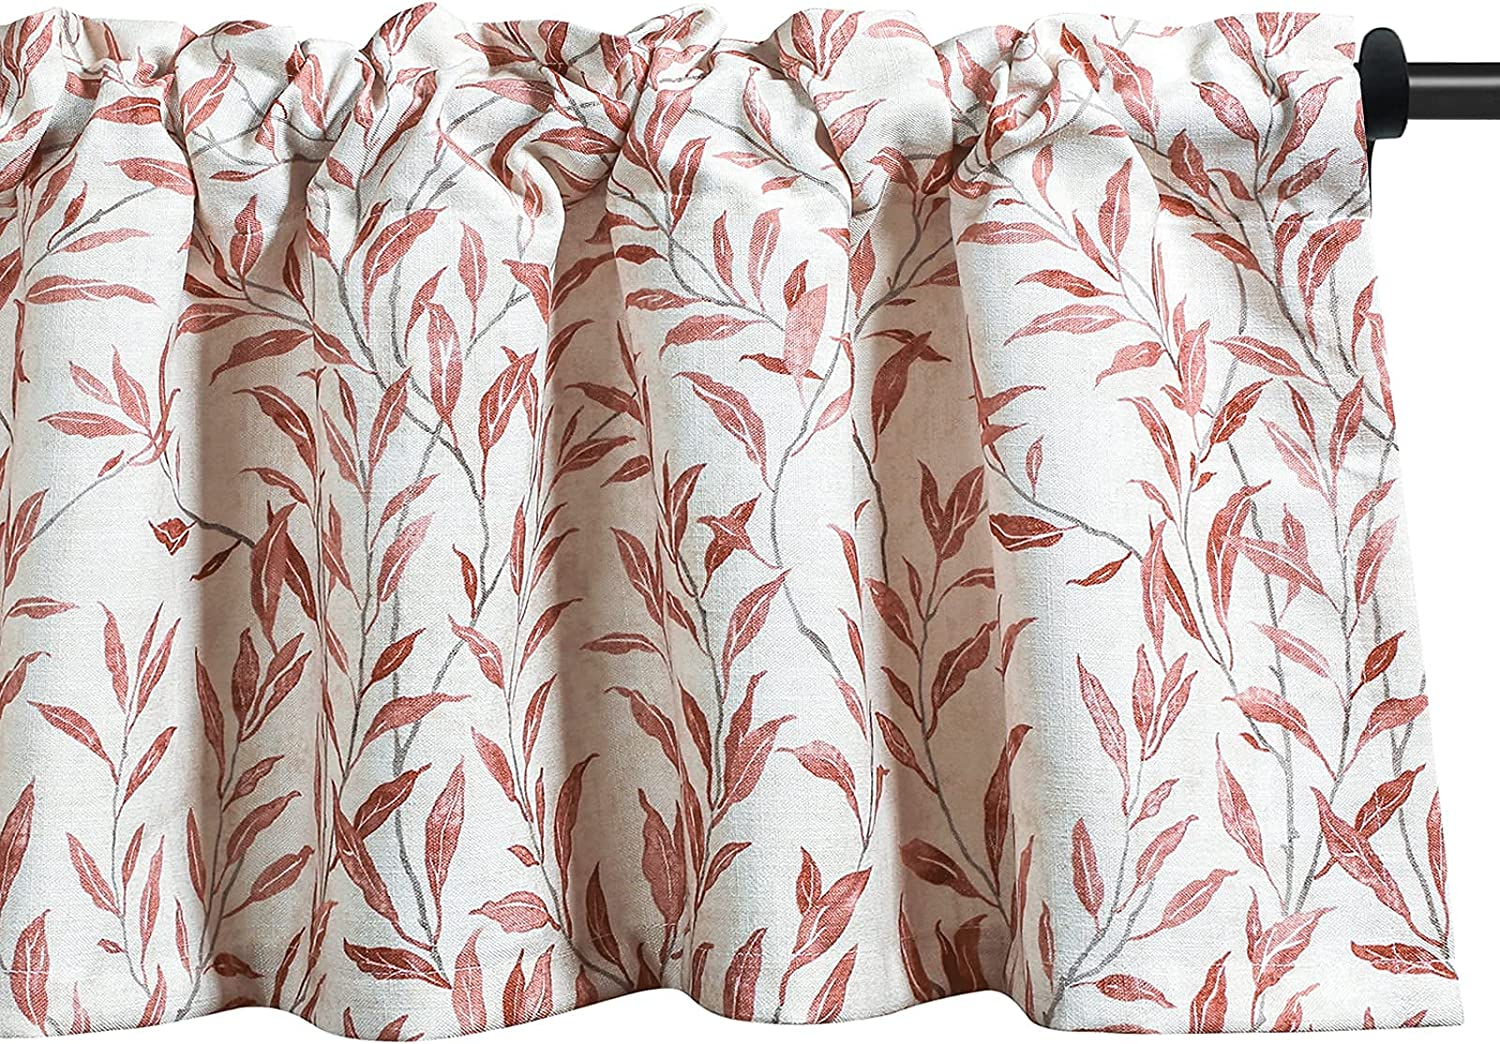 VOGOL Kitchen Valances Meticulous Painting Willow Sales Time sale results No. 1 Style Leaves P